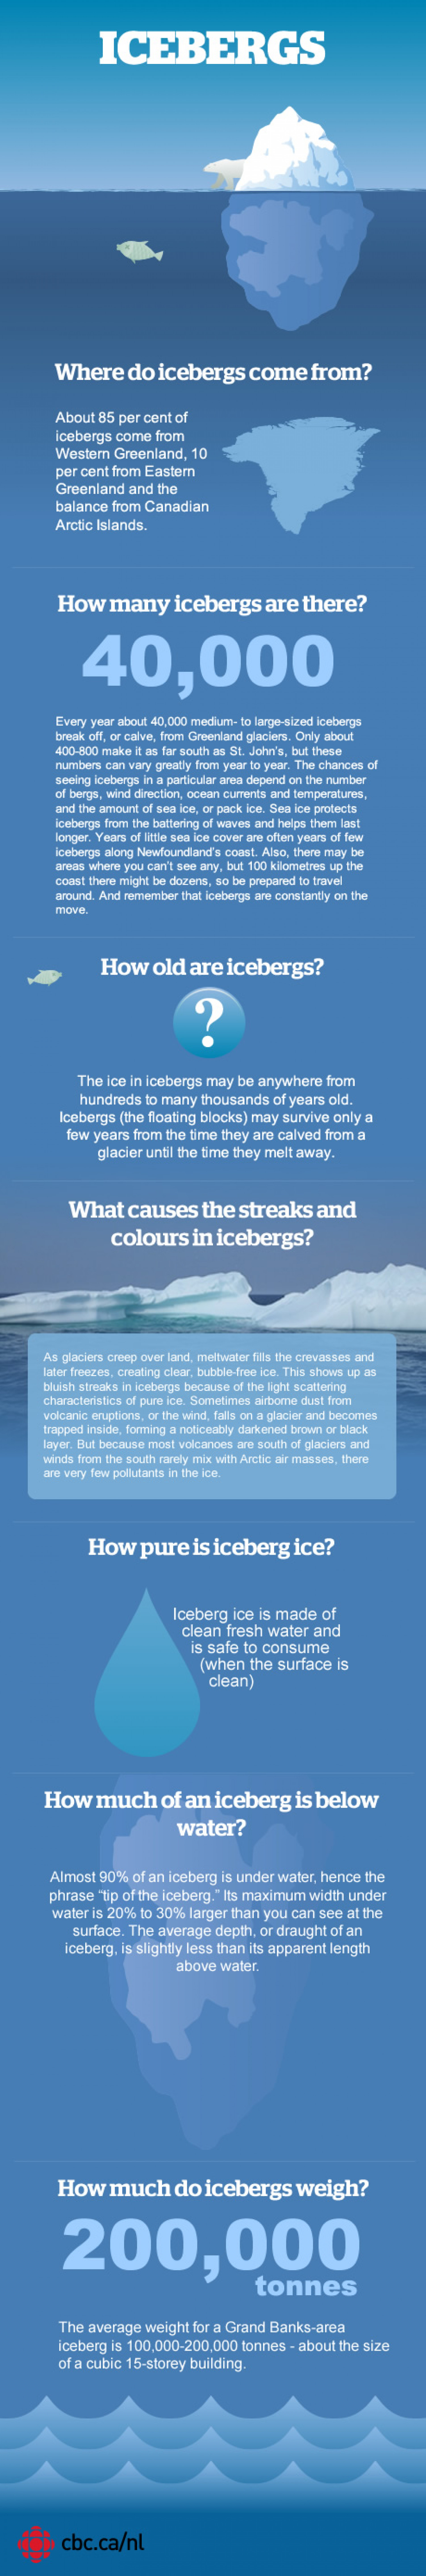 The inside story of an iceberg Infographic